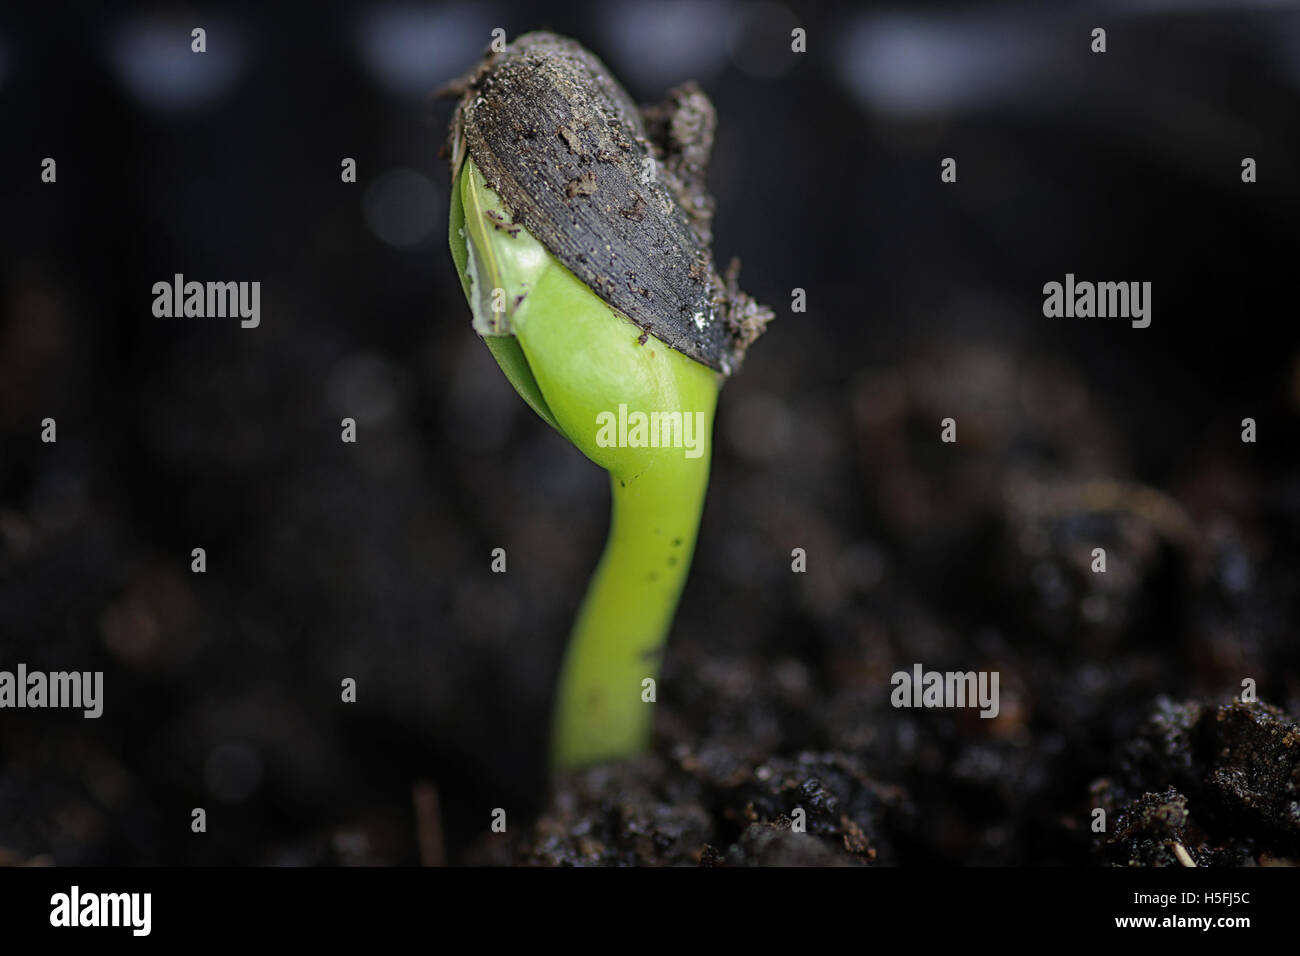 small sprout from seeds - Stock Image